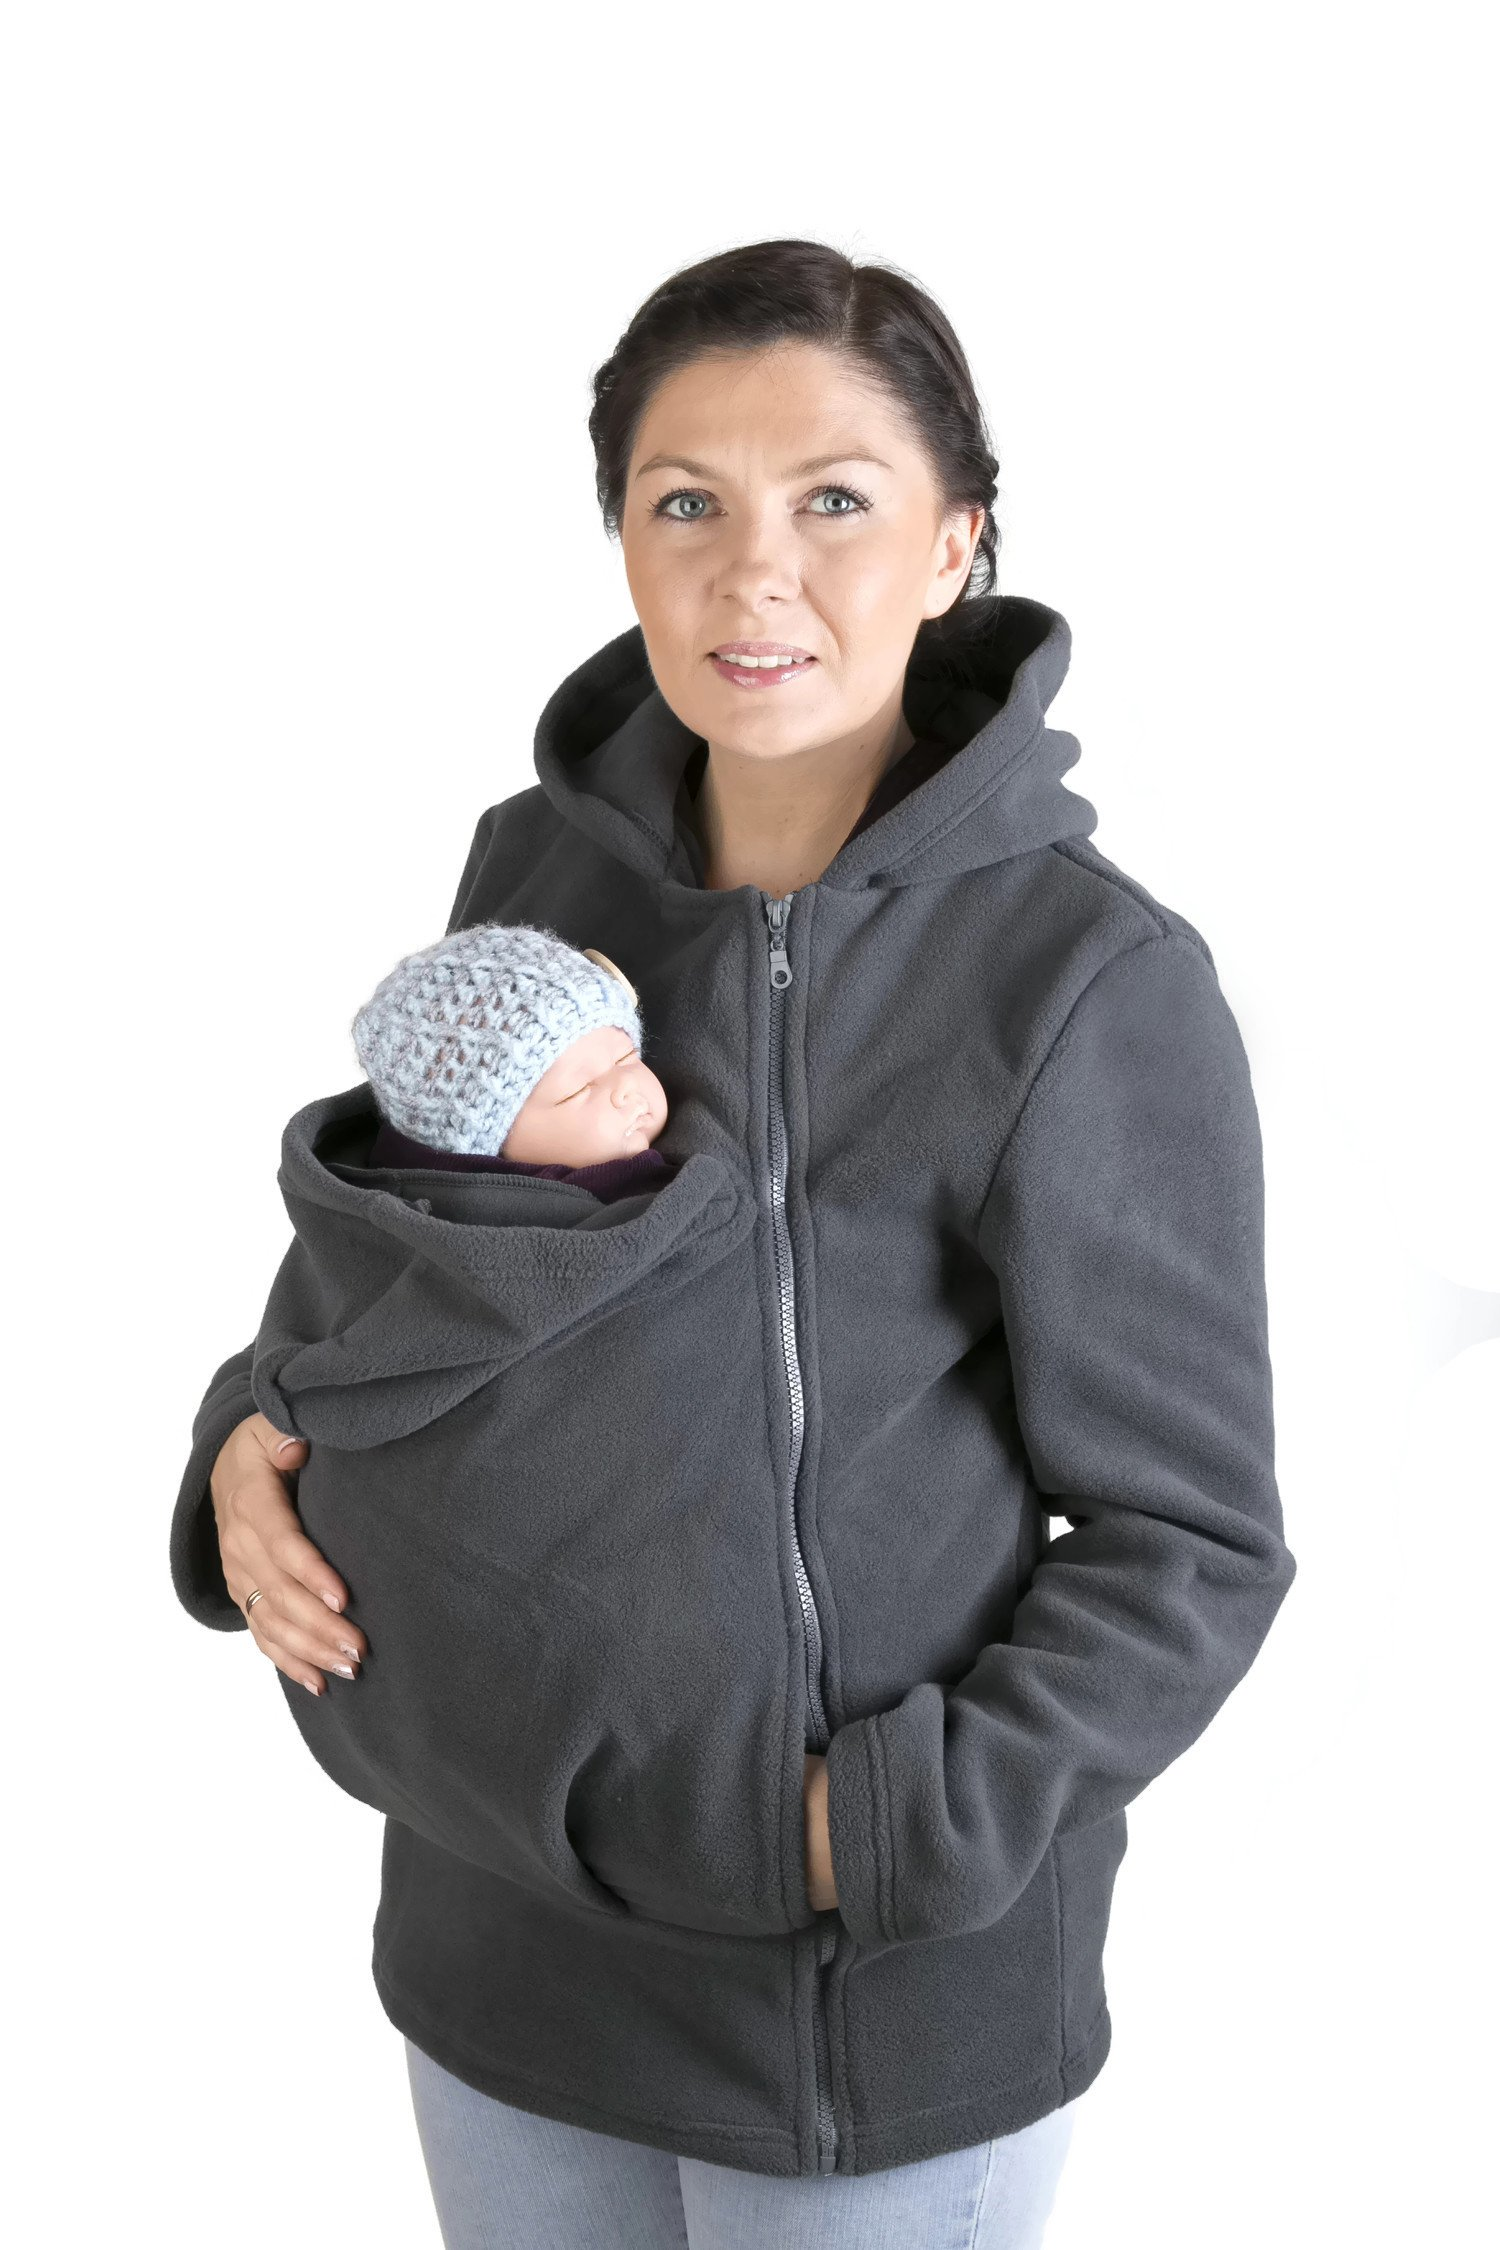 Maternity Polar warm fleece Hoodie / Pullover for two / for Baby Carriers/ Baby carrying wearing (M - US8)